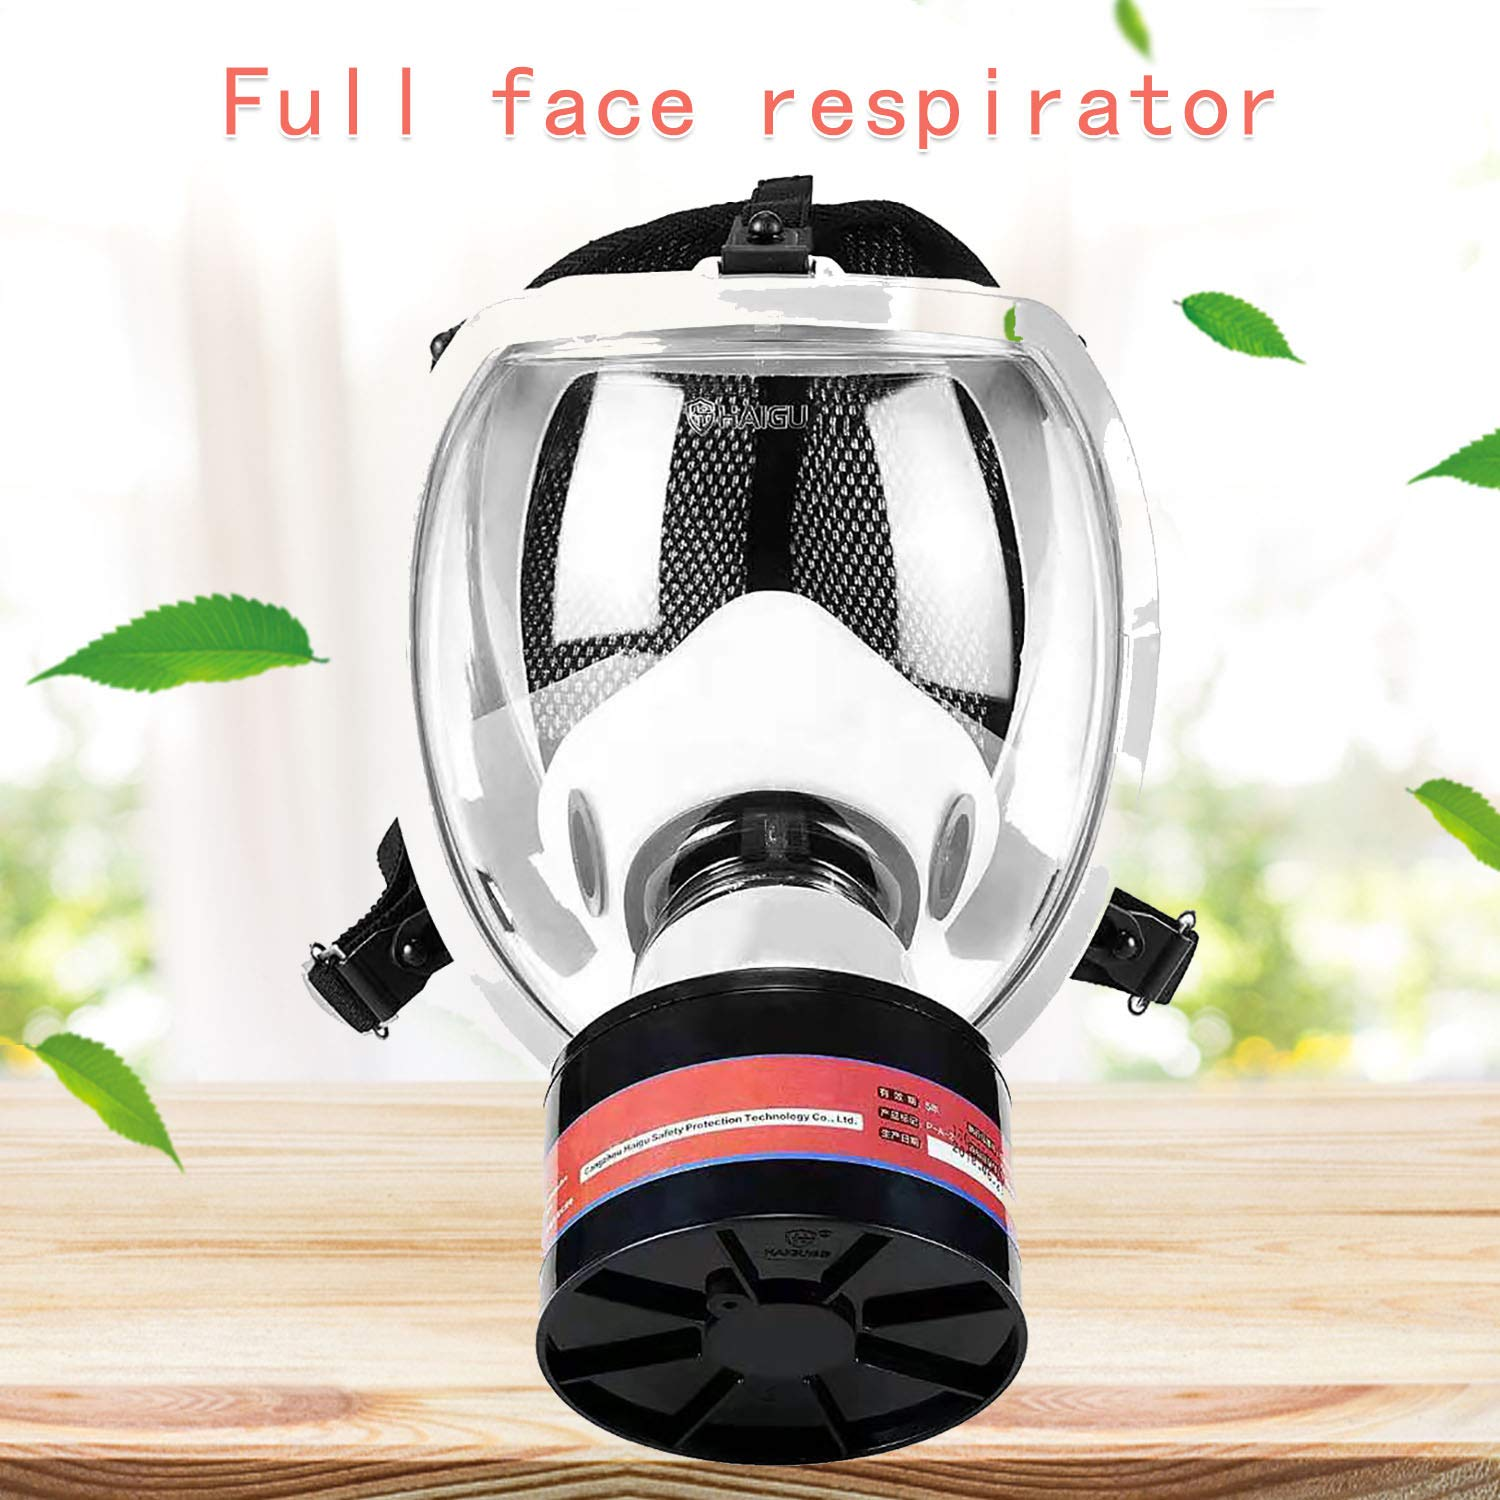 Phoenixfly99 Full Face Organic Vapor Respirator Manufacturer Warranty ASTM Safety Mask N95 Activated Charcoal Air filter Eye Protection For Vapor Organic Painting Cleaning Welding (9000 safety mask)